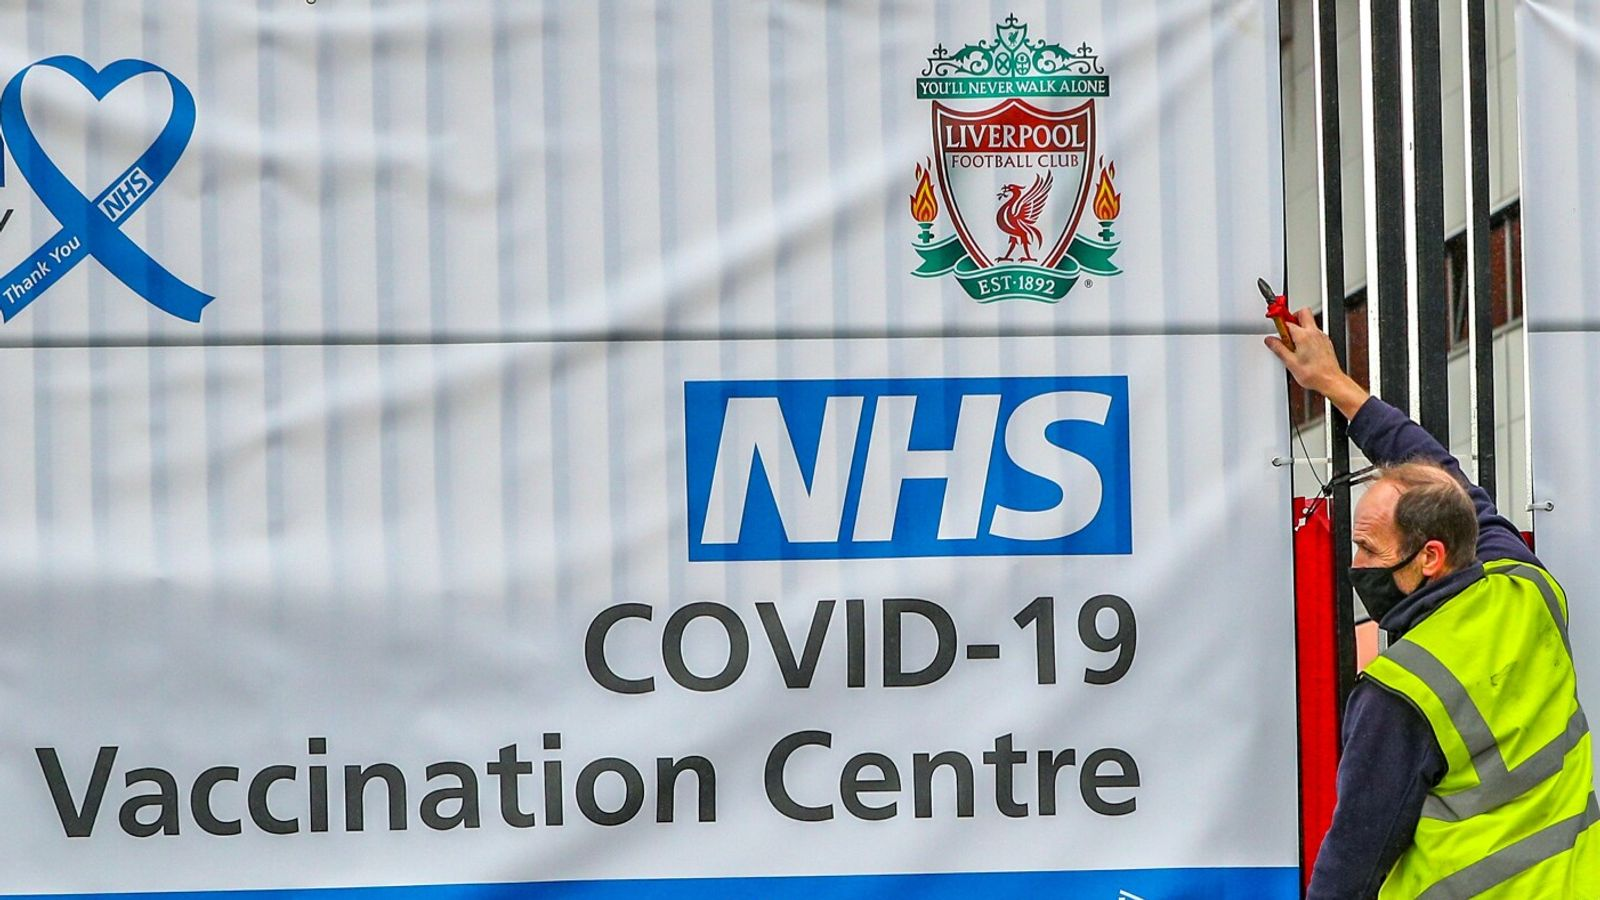 COVID-19: Liverpool council health board advises people to work from home in face of rising coronavirus cases